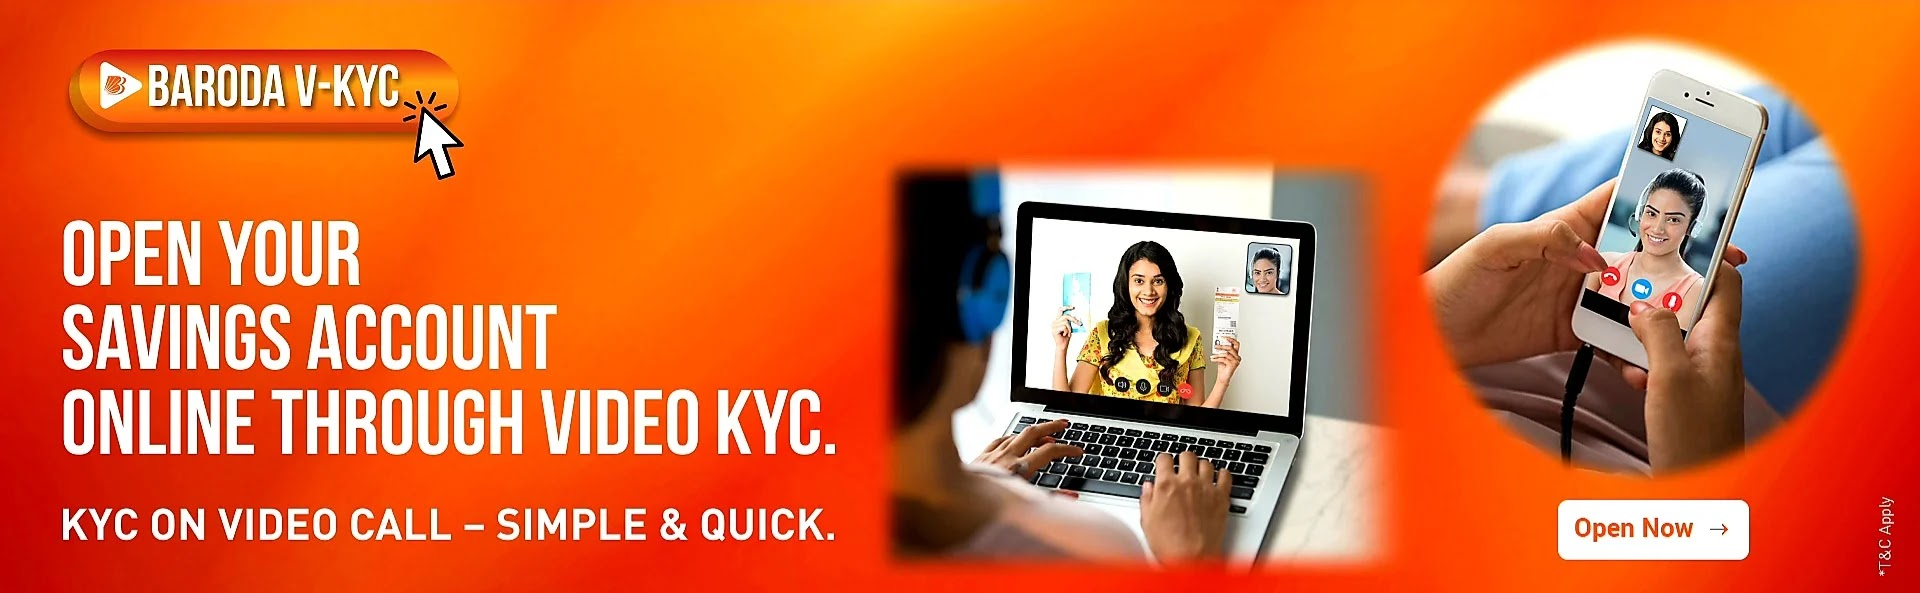 Bank of Baroda Video KYC Account Launched    घर बैठे Full KYC अकाउंट खोले    How to Open Account Online with Video KYC    Bank of Baroda me Full KYC Account Online Kaise Khole